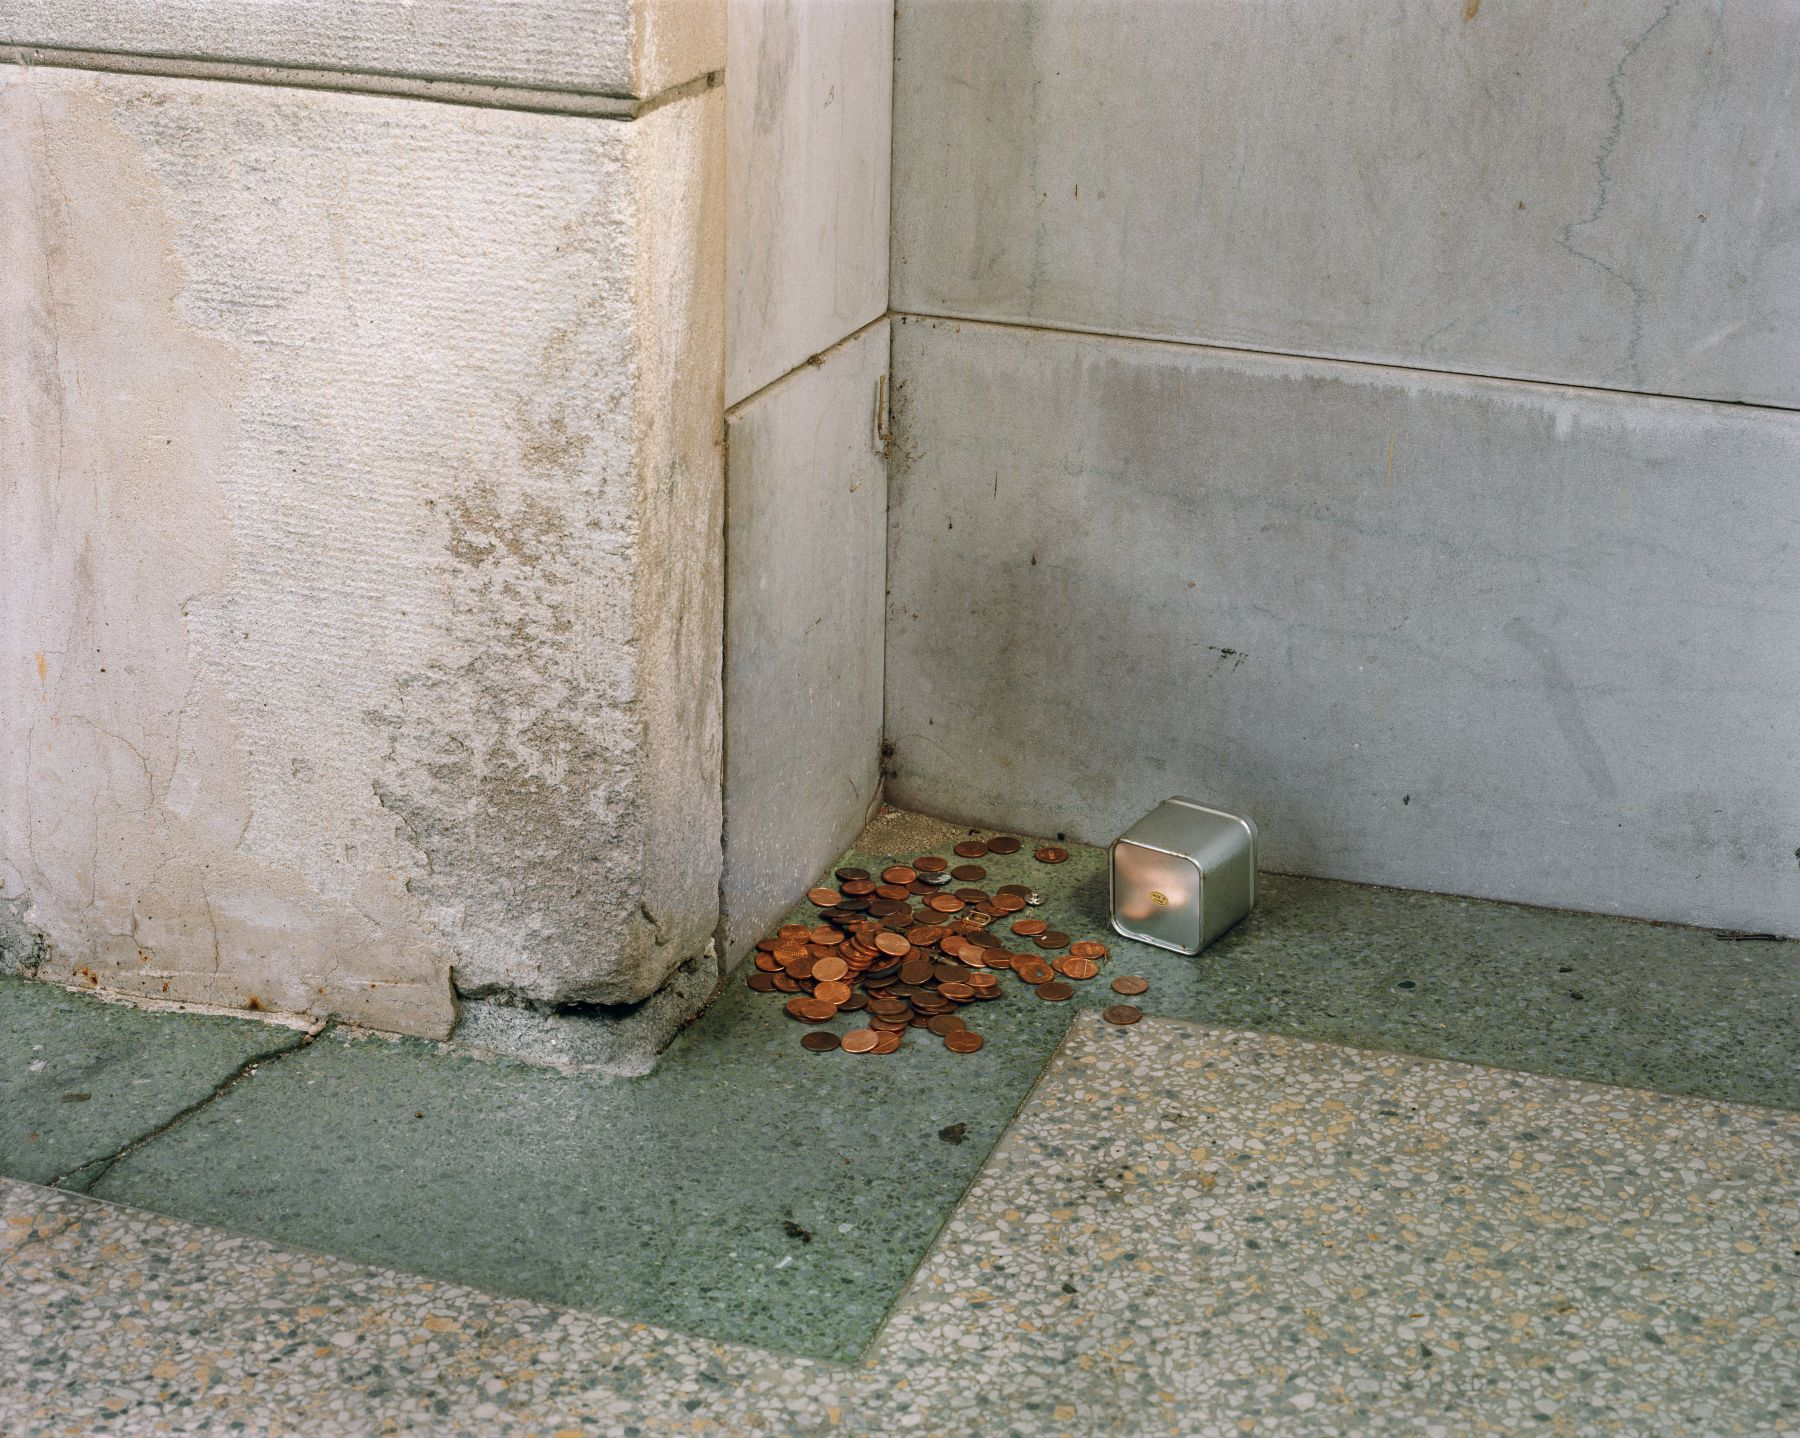 West Bank Building, 2002, 30 x 40 inches, Chromogenic Print